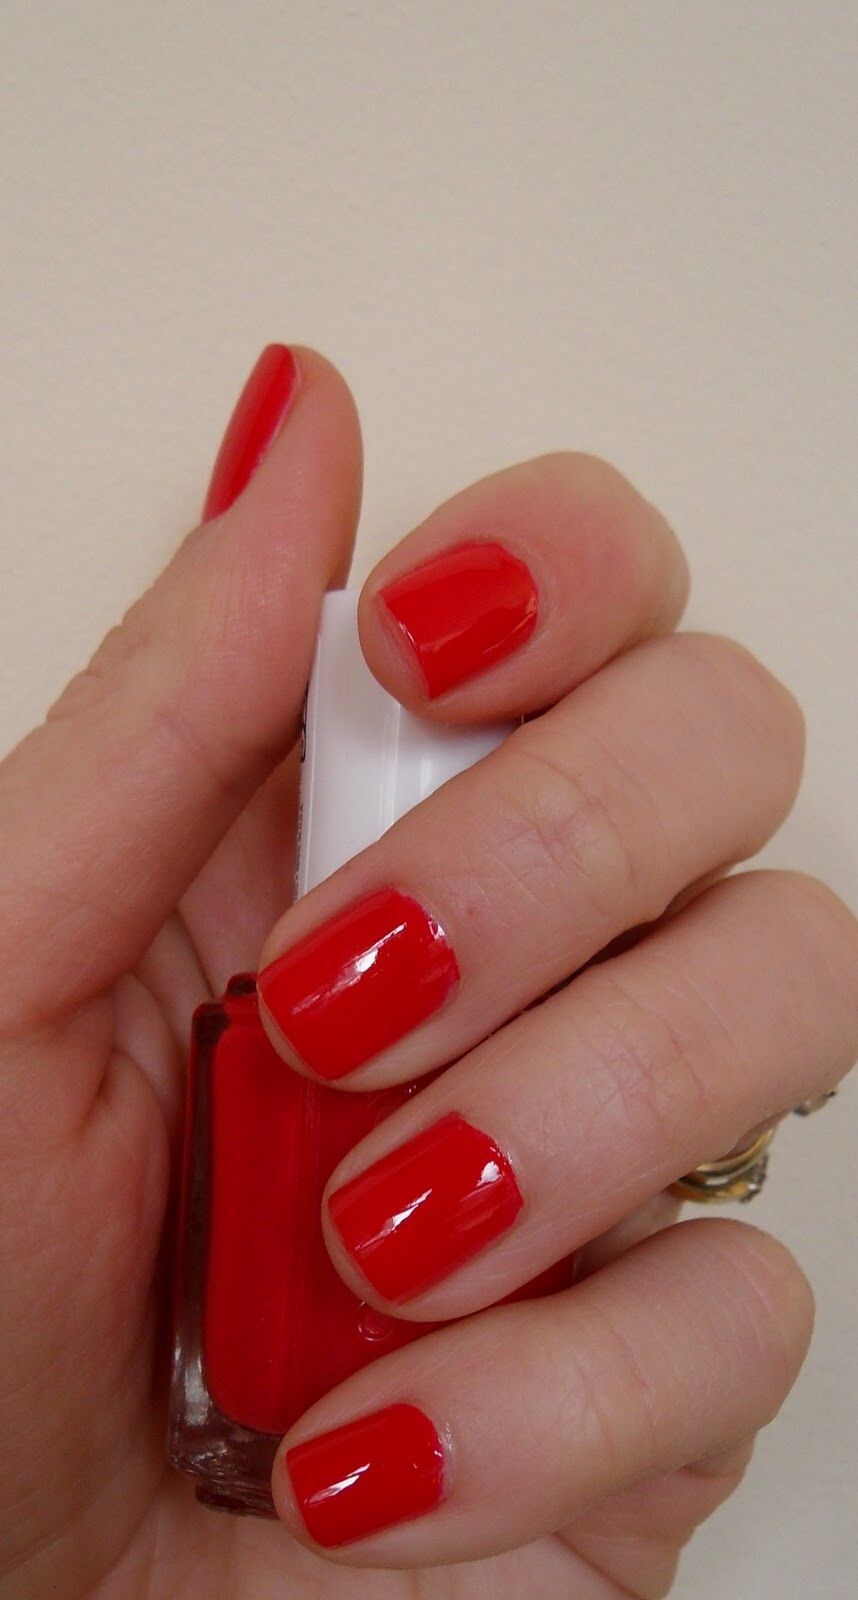 Essie lollipop | Manicures and more... | Nails, Nail colors, Essie ...